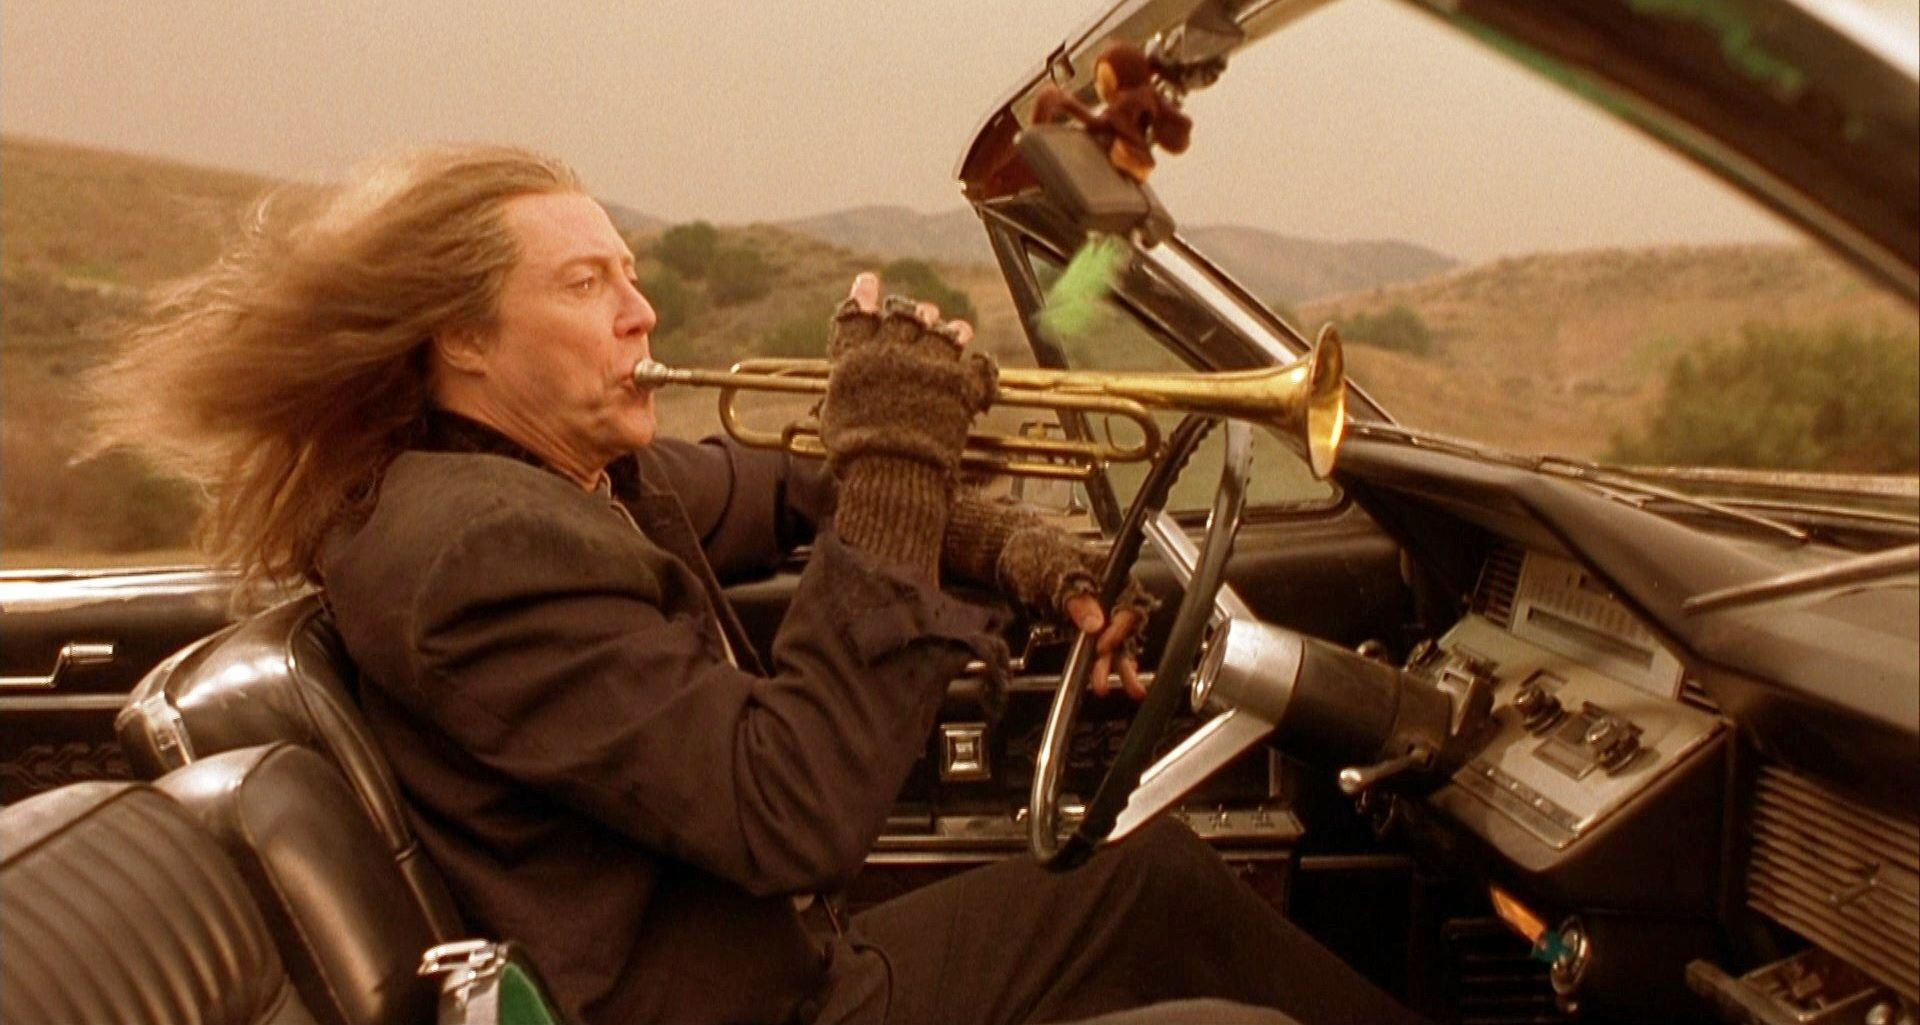 The angel Gabriel (Christopher Walken) playing the Last Trumpet while driving in The Prophecy 3: The Ascent (2000)